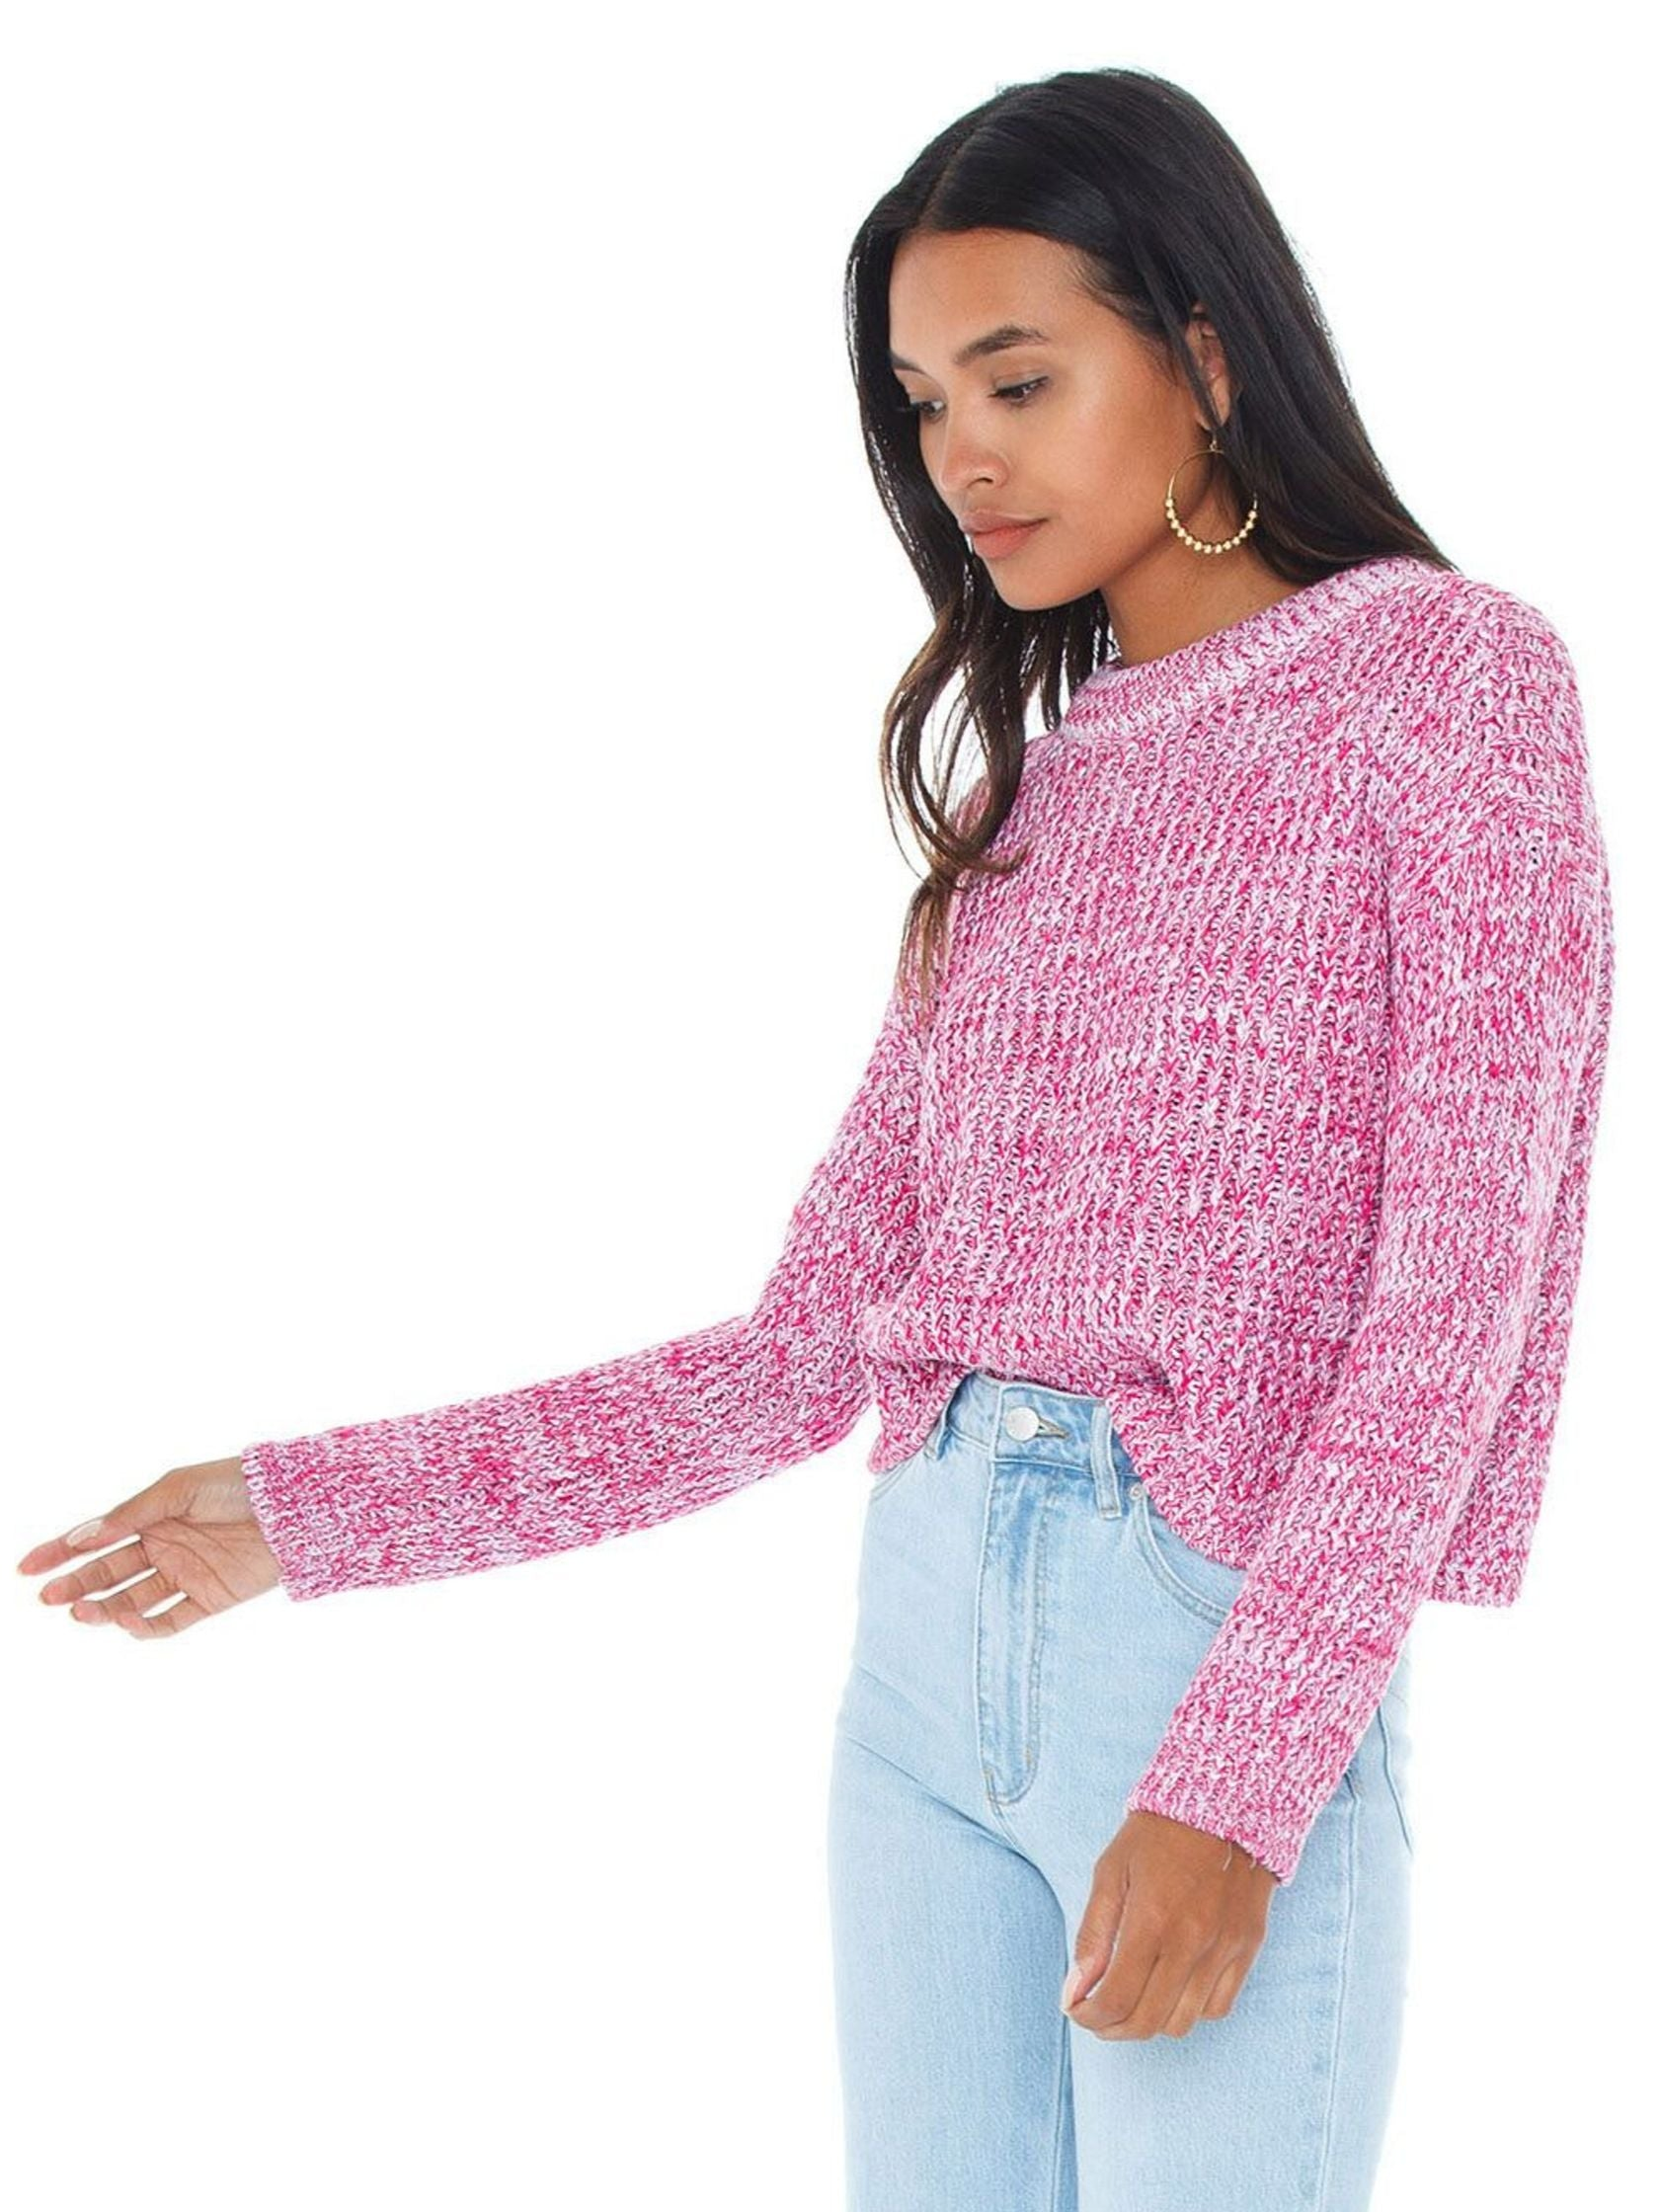 Women wearing a sweater rental from MINKPINK called Mikaela Knit Jumper